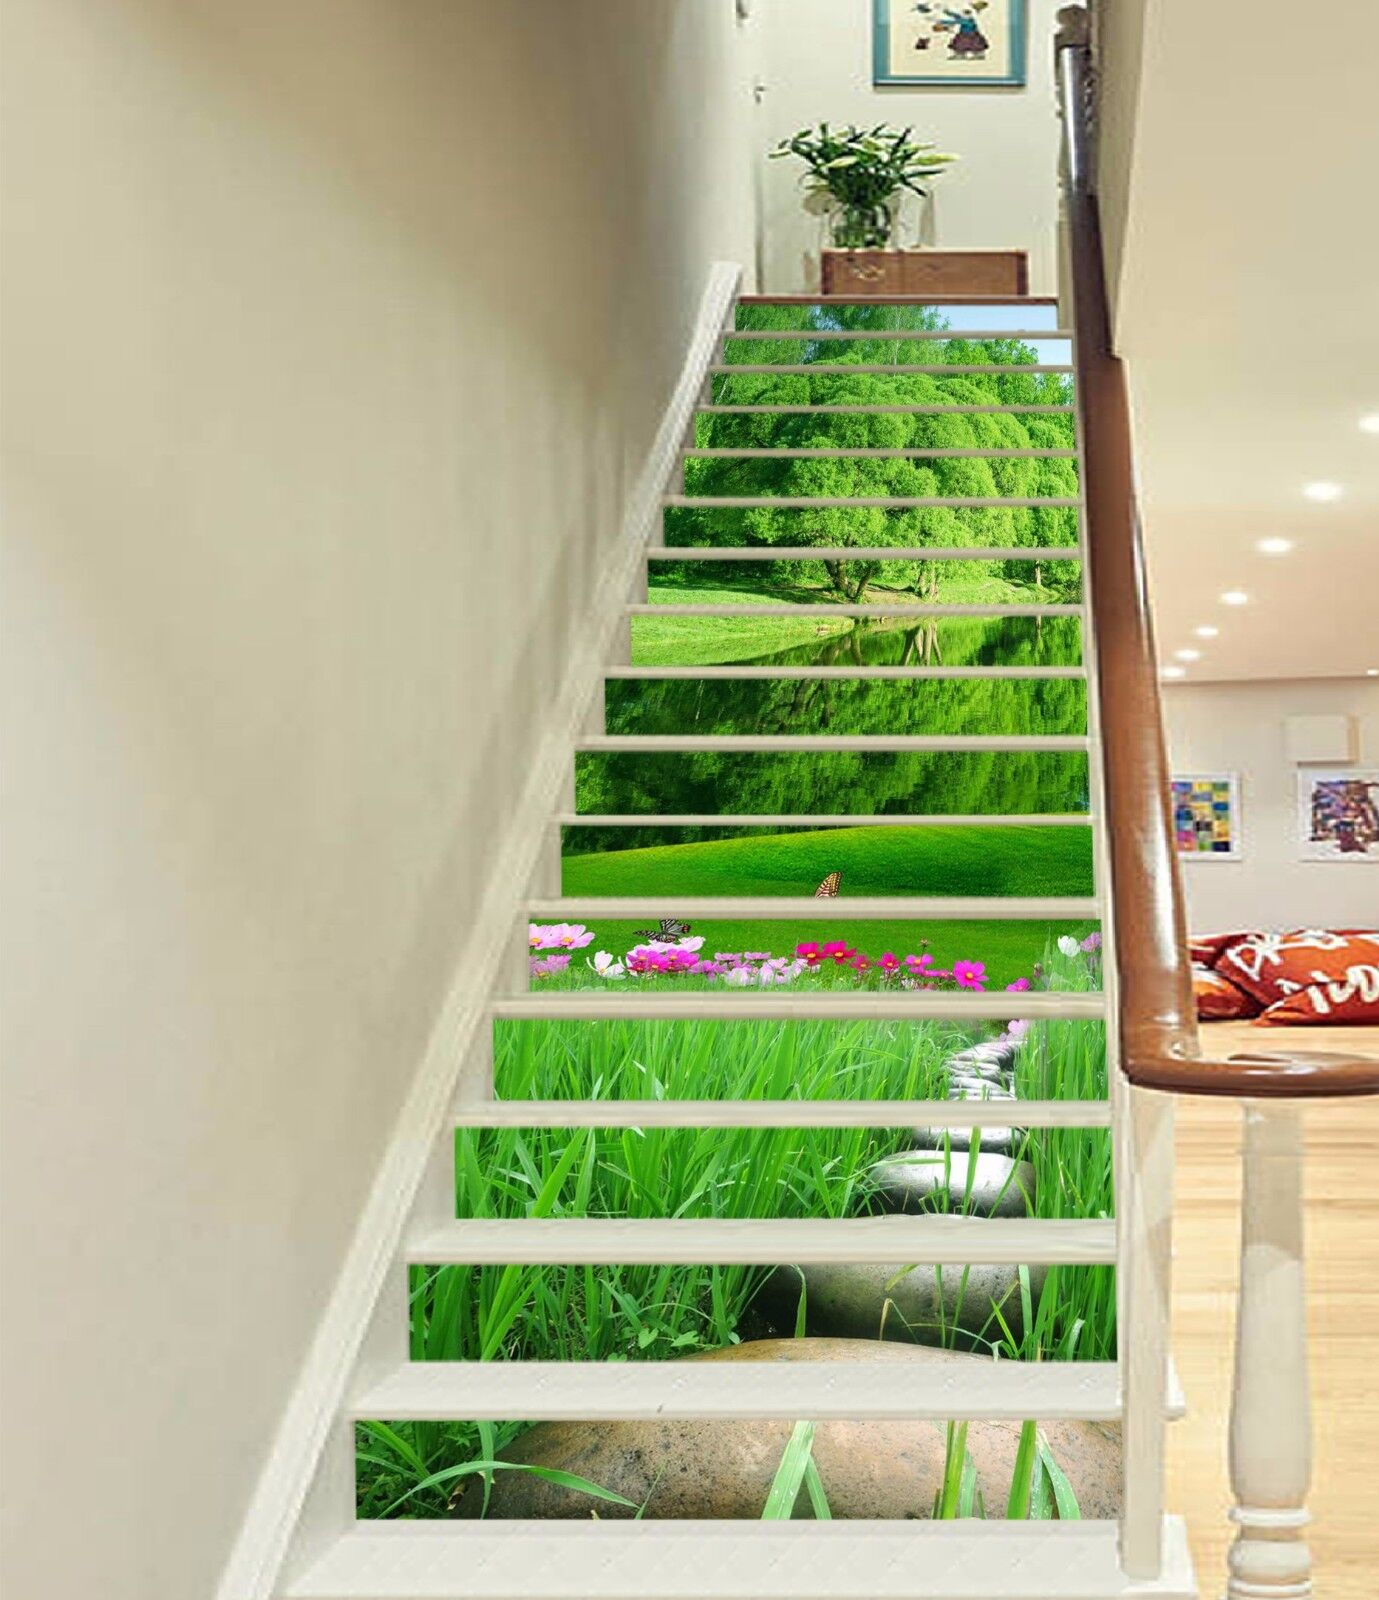 3D Lake Grass 051 Stairs Risers Decoration Photo Mural Vinyl Decal WandPapier US